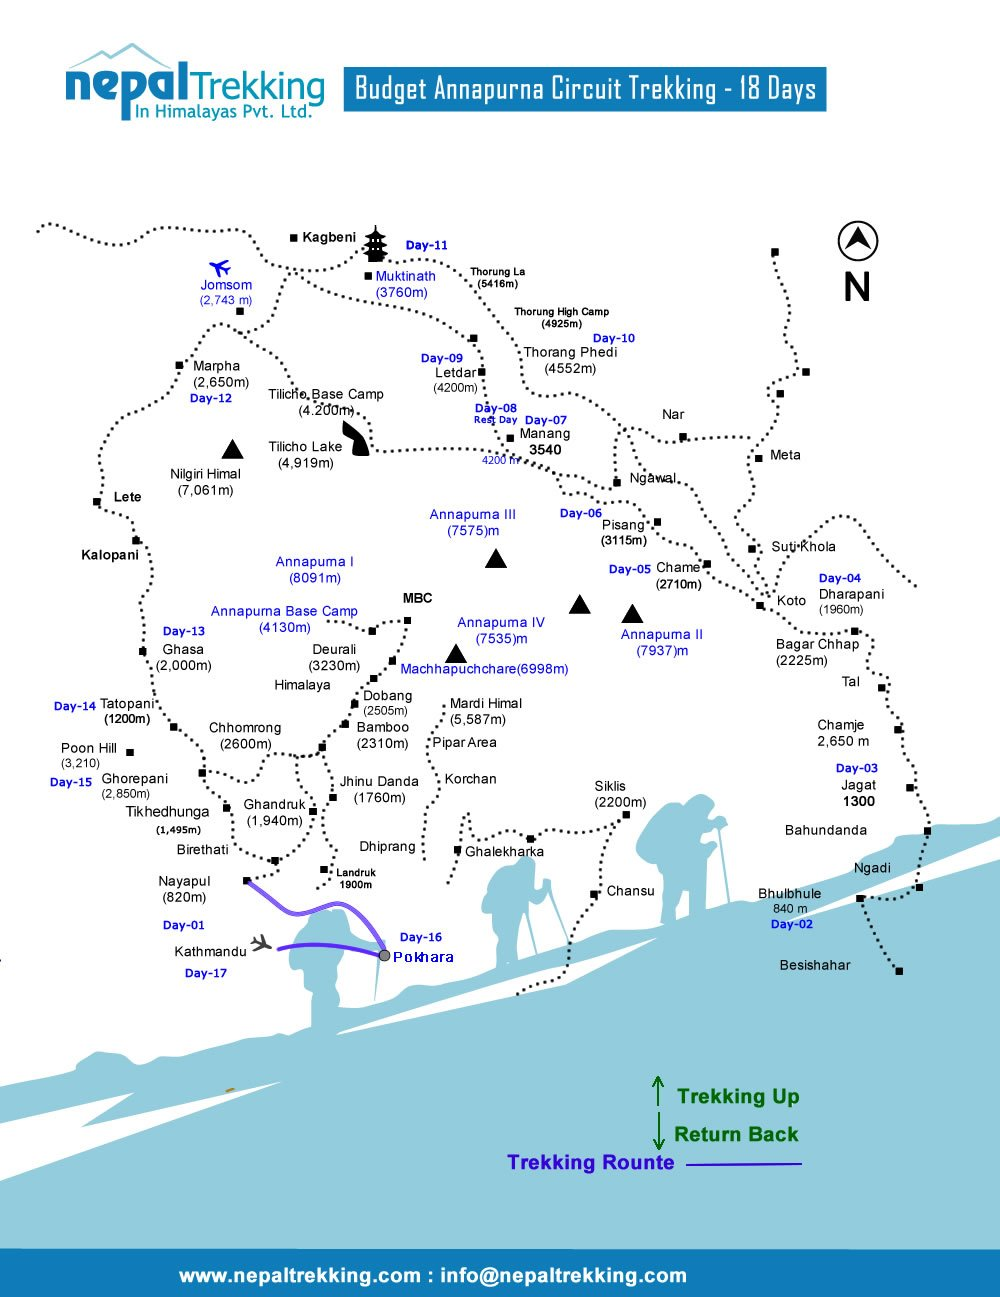 Budget Annapurna Circuit Trekking Map for your Referece on